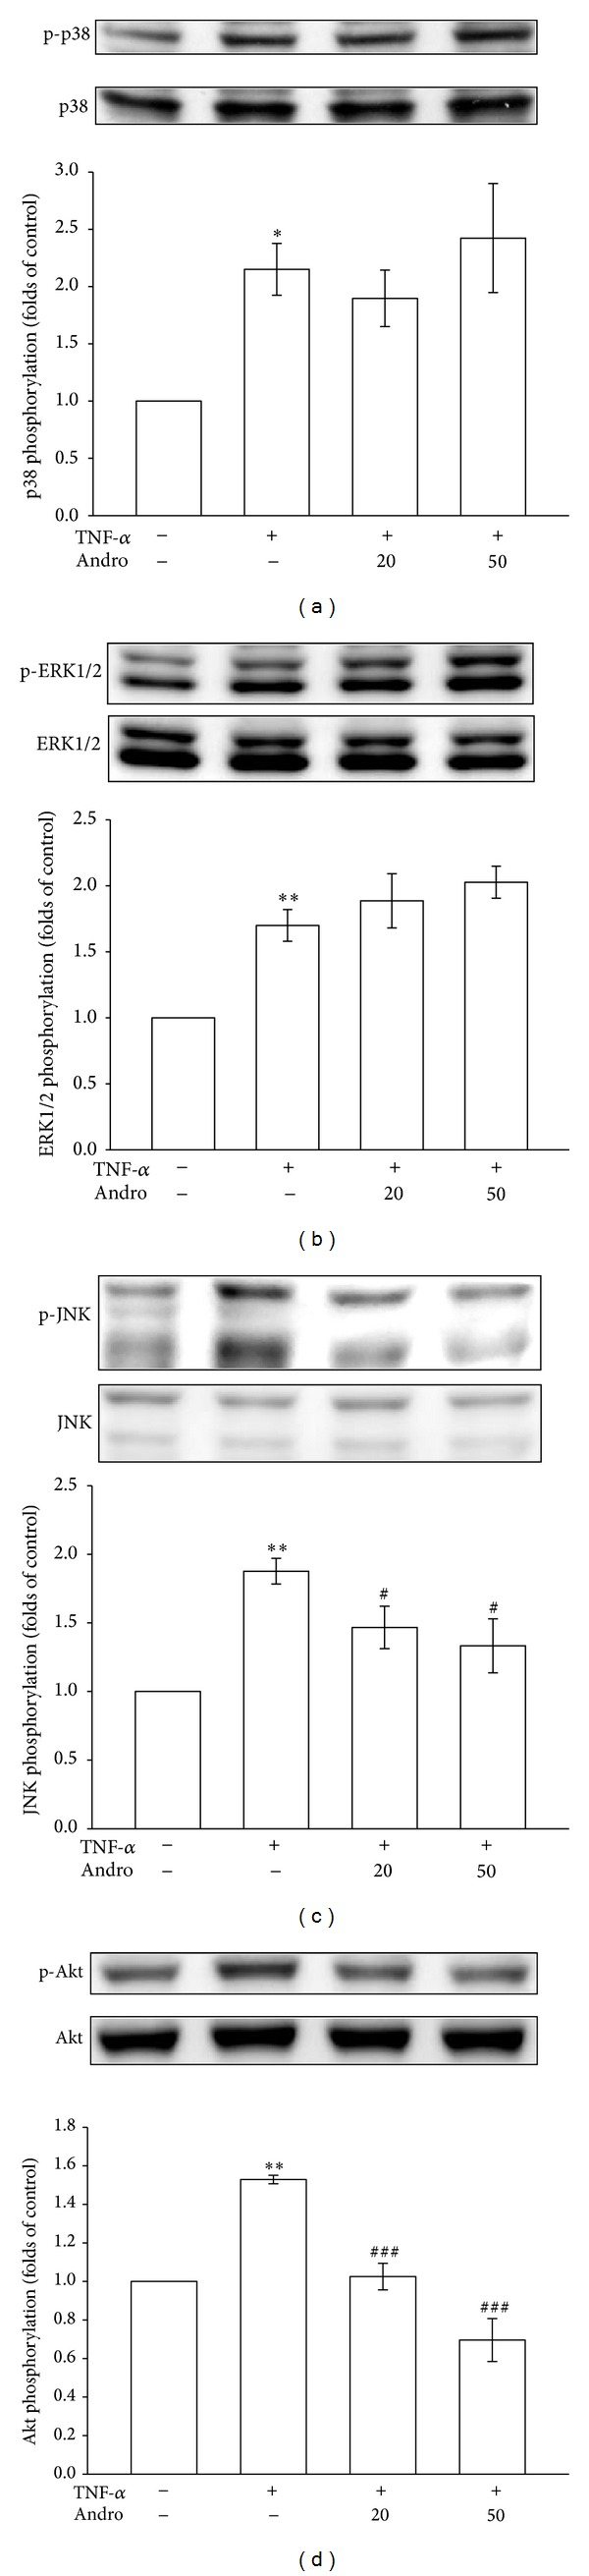 Effects of andrographolide on p38MAPK, ERK1/2, JNK, and Akt signaling pathways in TNF- α -stimulated VSMCs. The VSMCs were treated with PBS (resting group) or pretreated with andrographolide (20 and 50 μ M) or an equal volume of DMSO (solvent control) for 20 min, and TNF- α (10 ng/mL) was subsequently added for 10 min. (a) p38MAPK phosphorylation, (b) ERK1/2 phosphorylation, (c) JNK phosphorylation, and (d) Akt phosphorylation were evaluated as described in Section 2 .* P